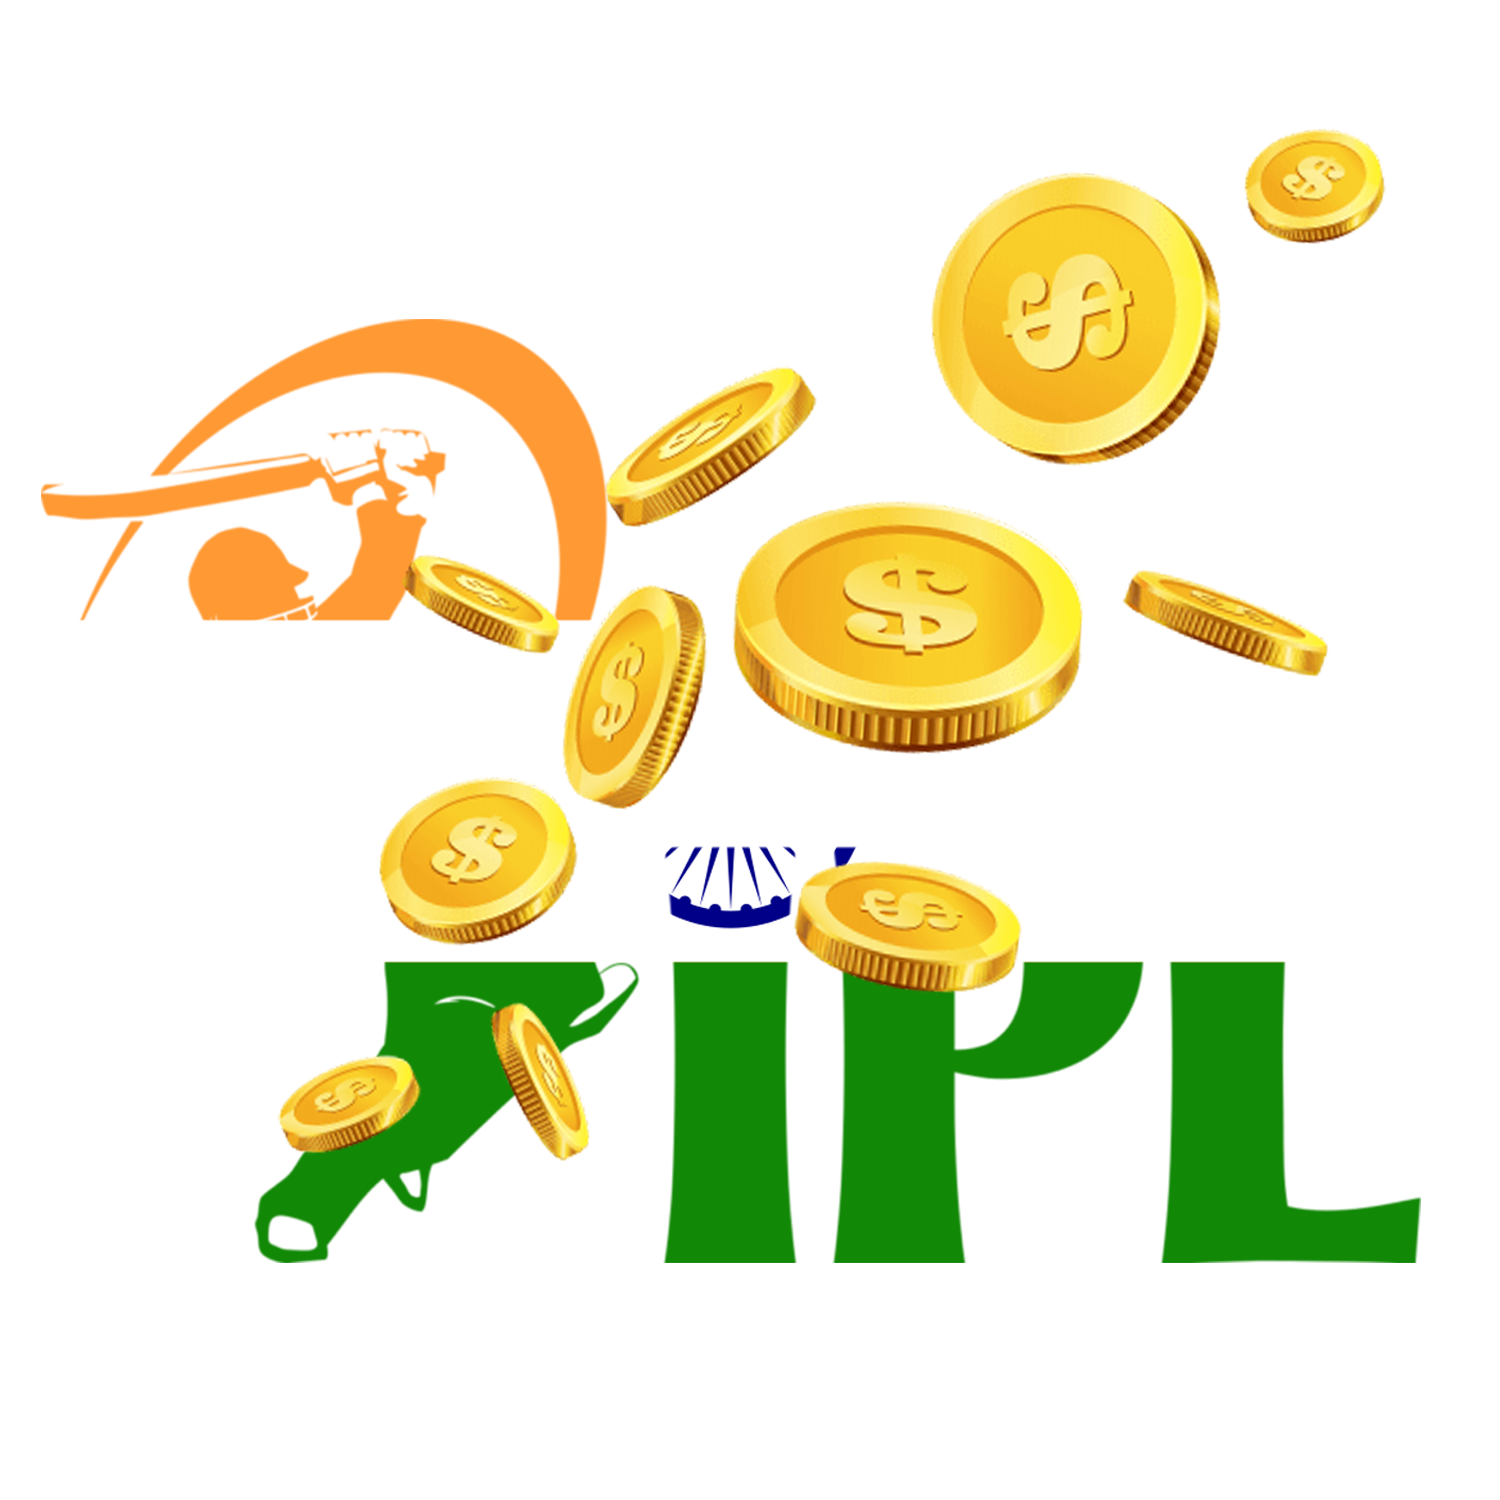 Sign up for your preferred betting webiste and start betting on the IPL events.